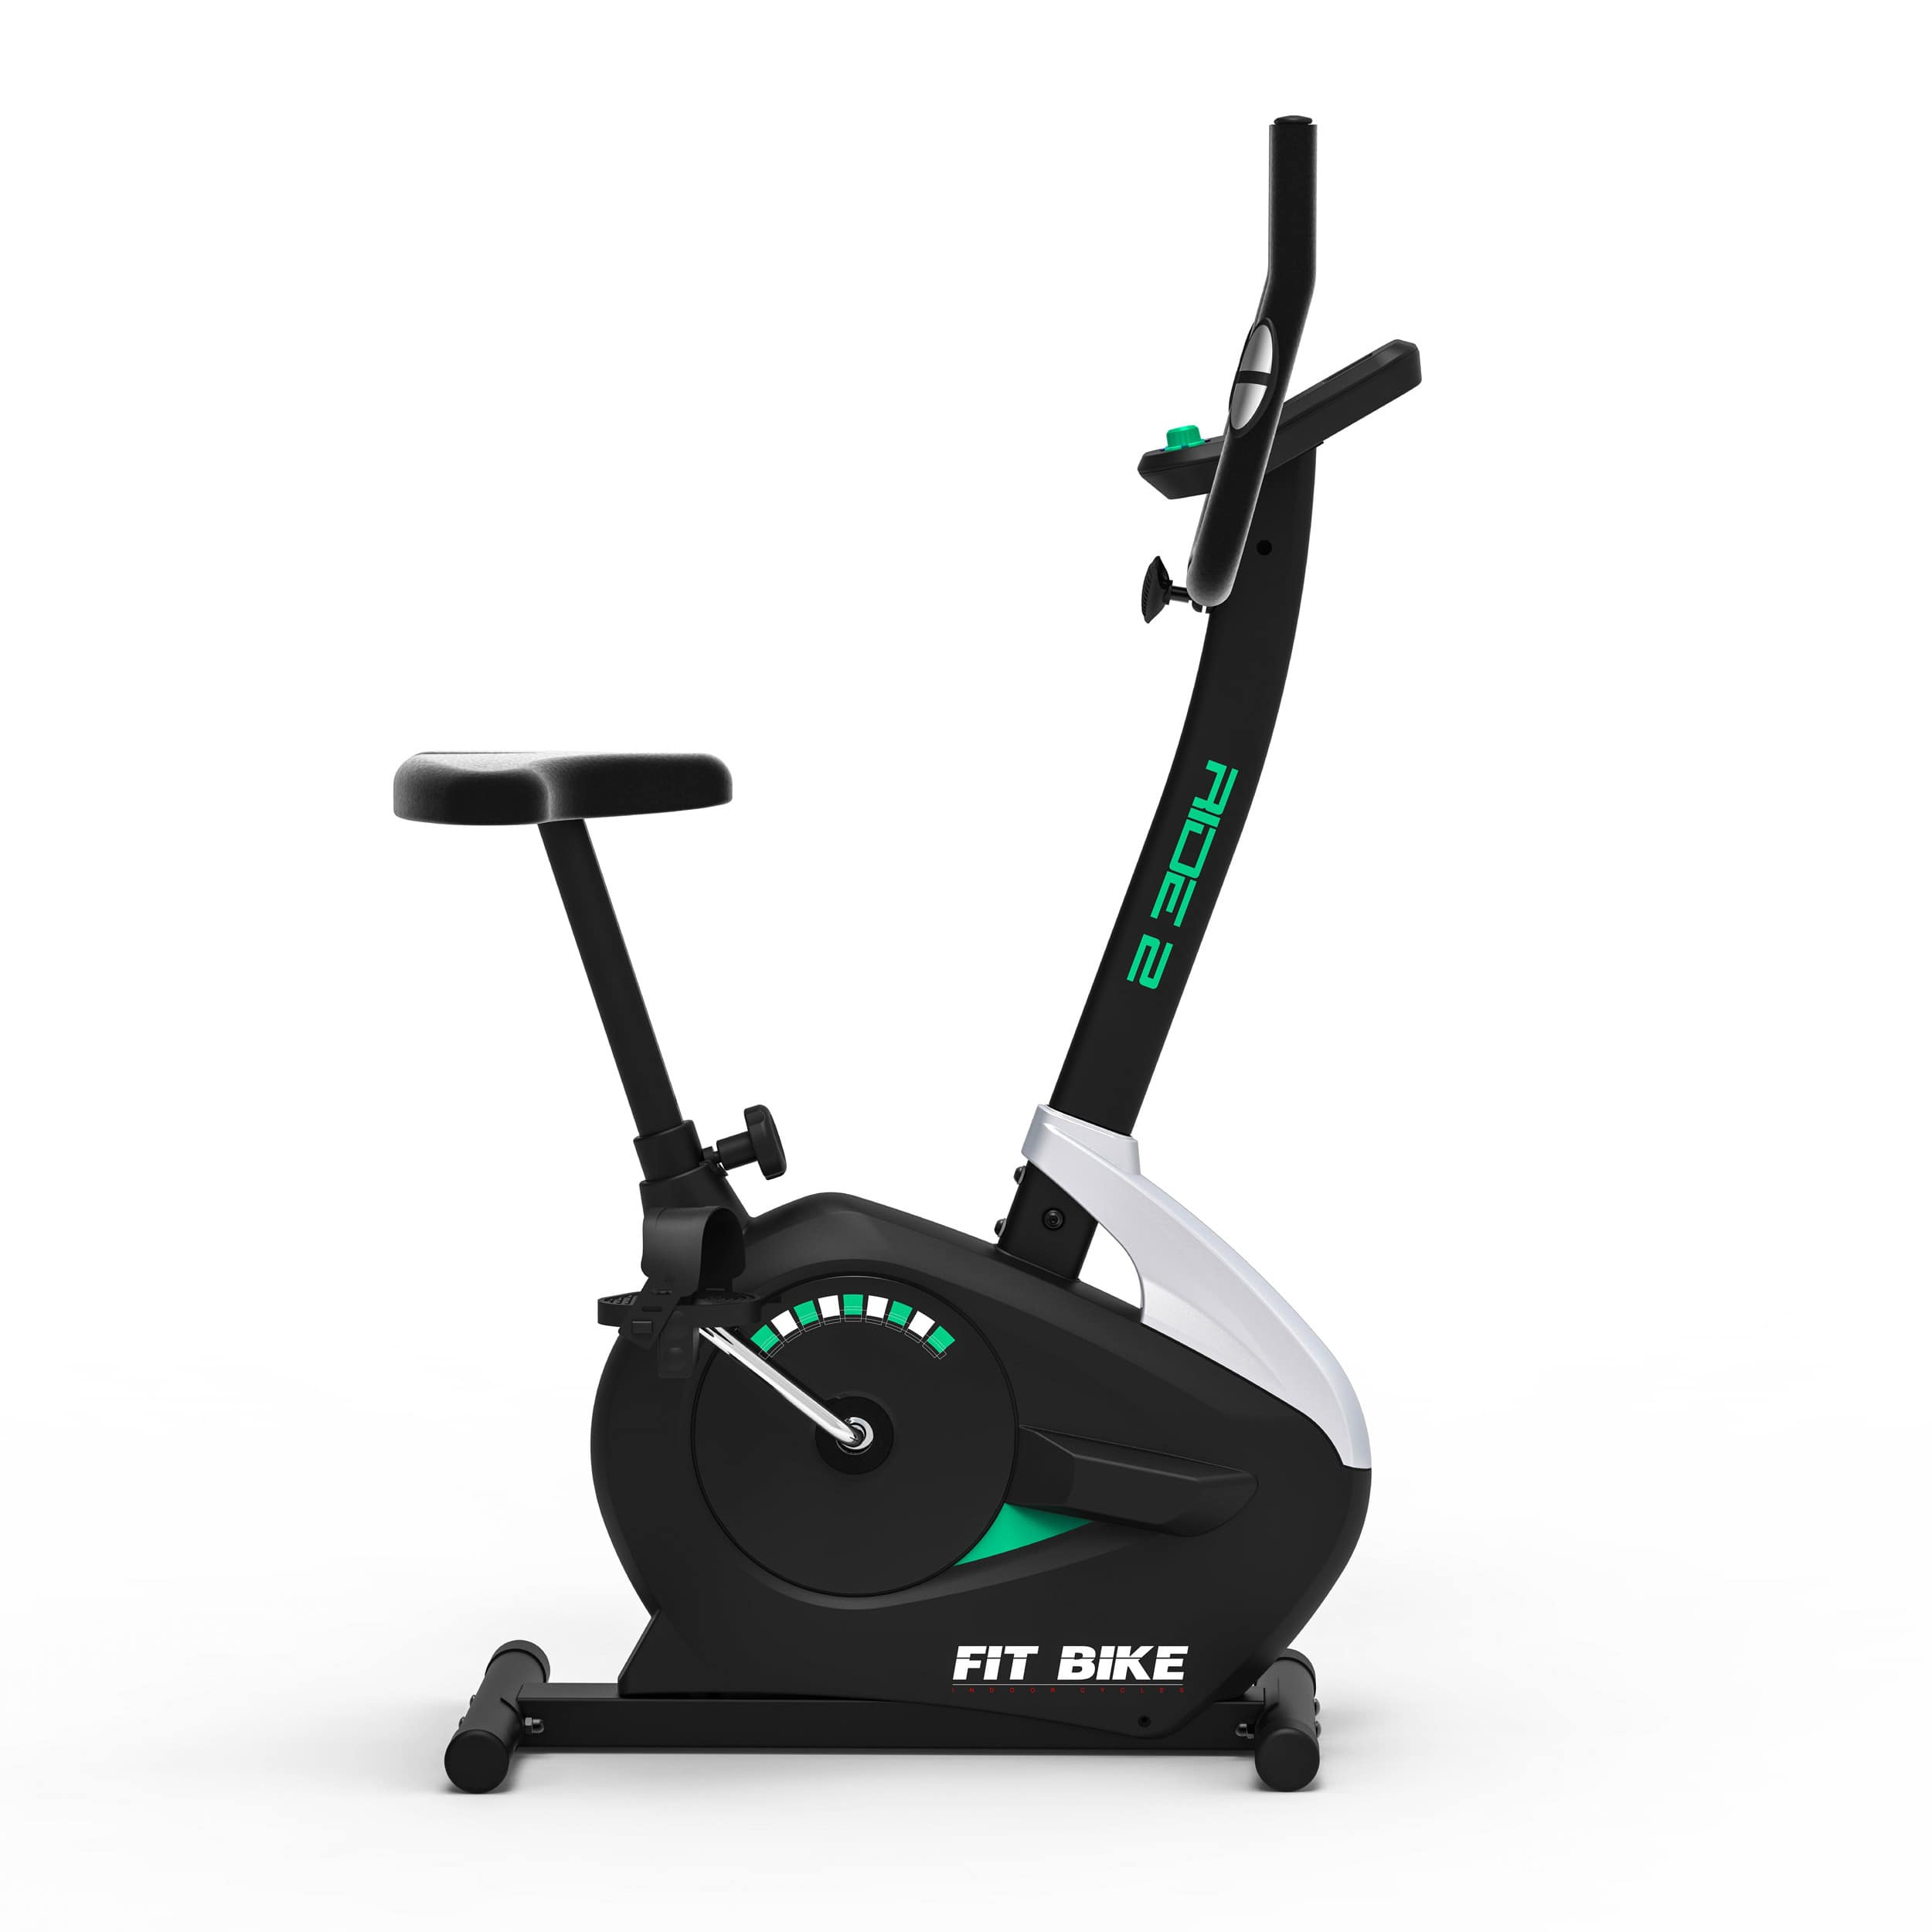 fitbike ride 2 hometrainer review